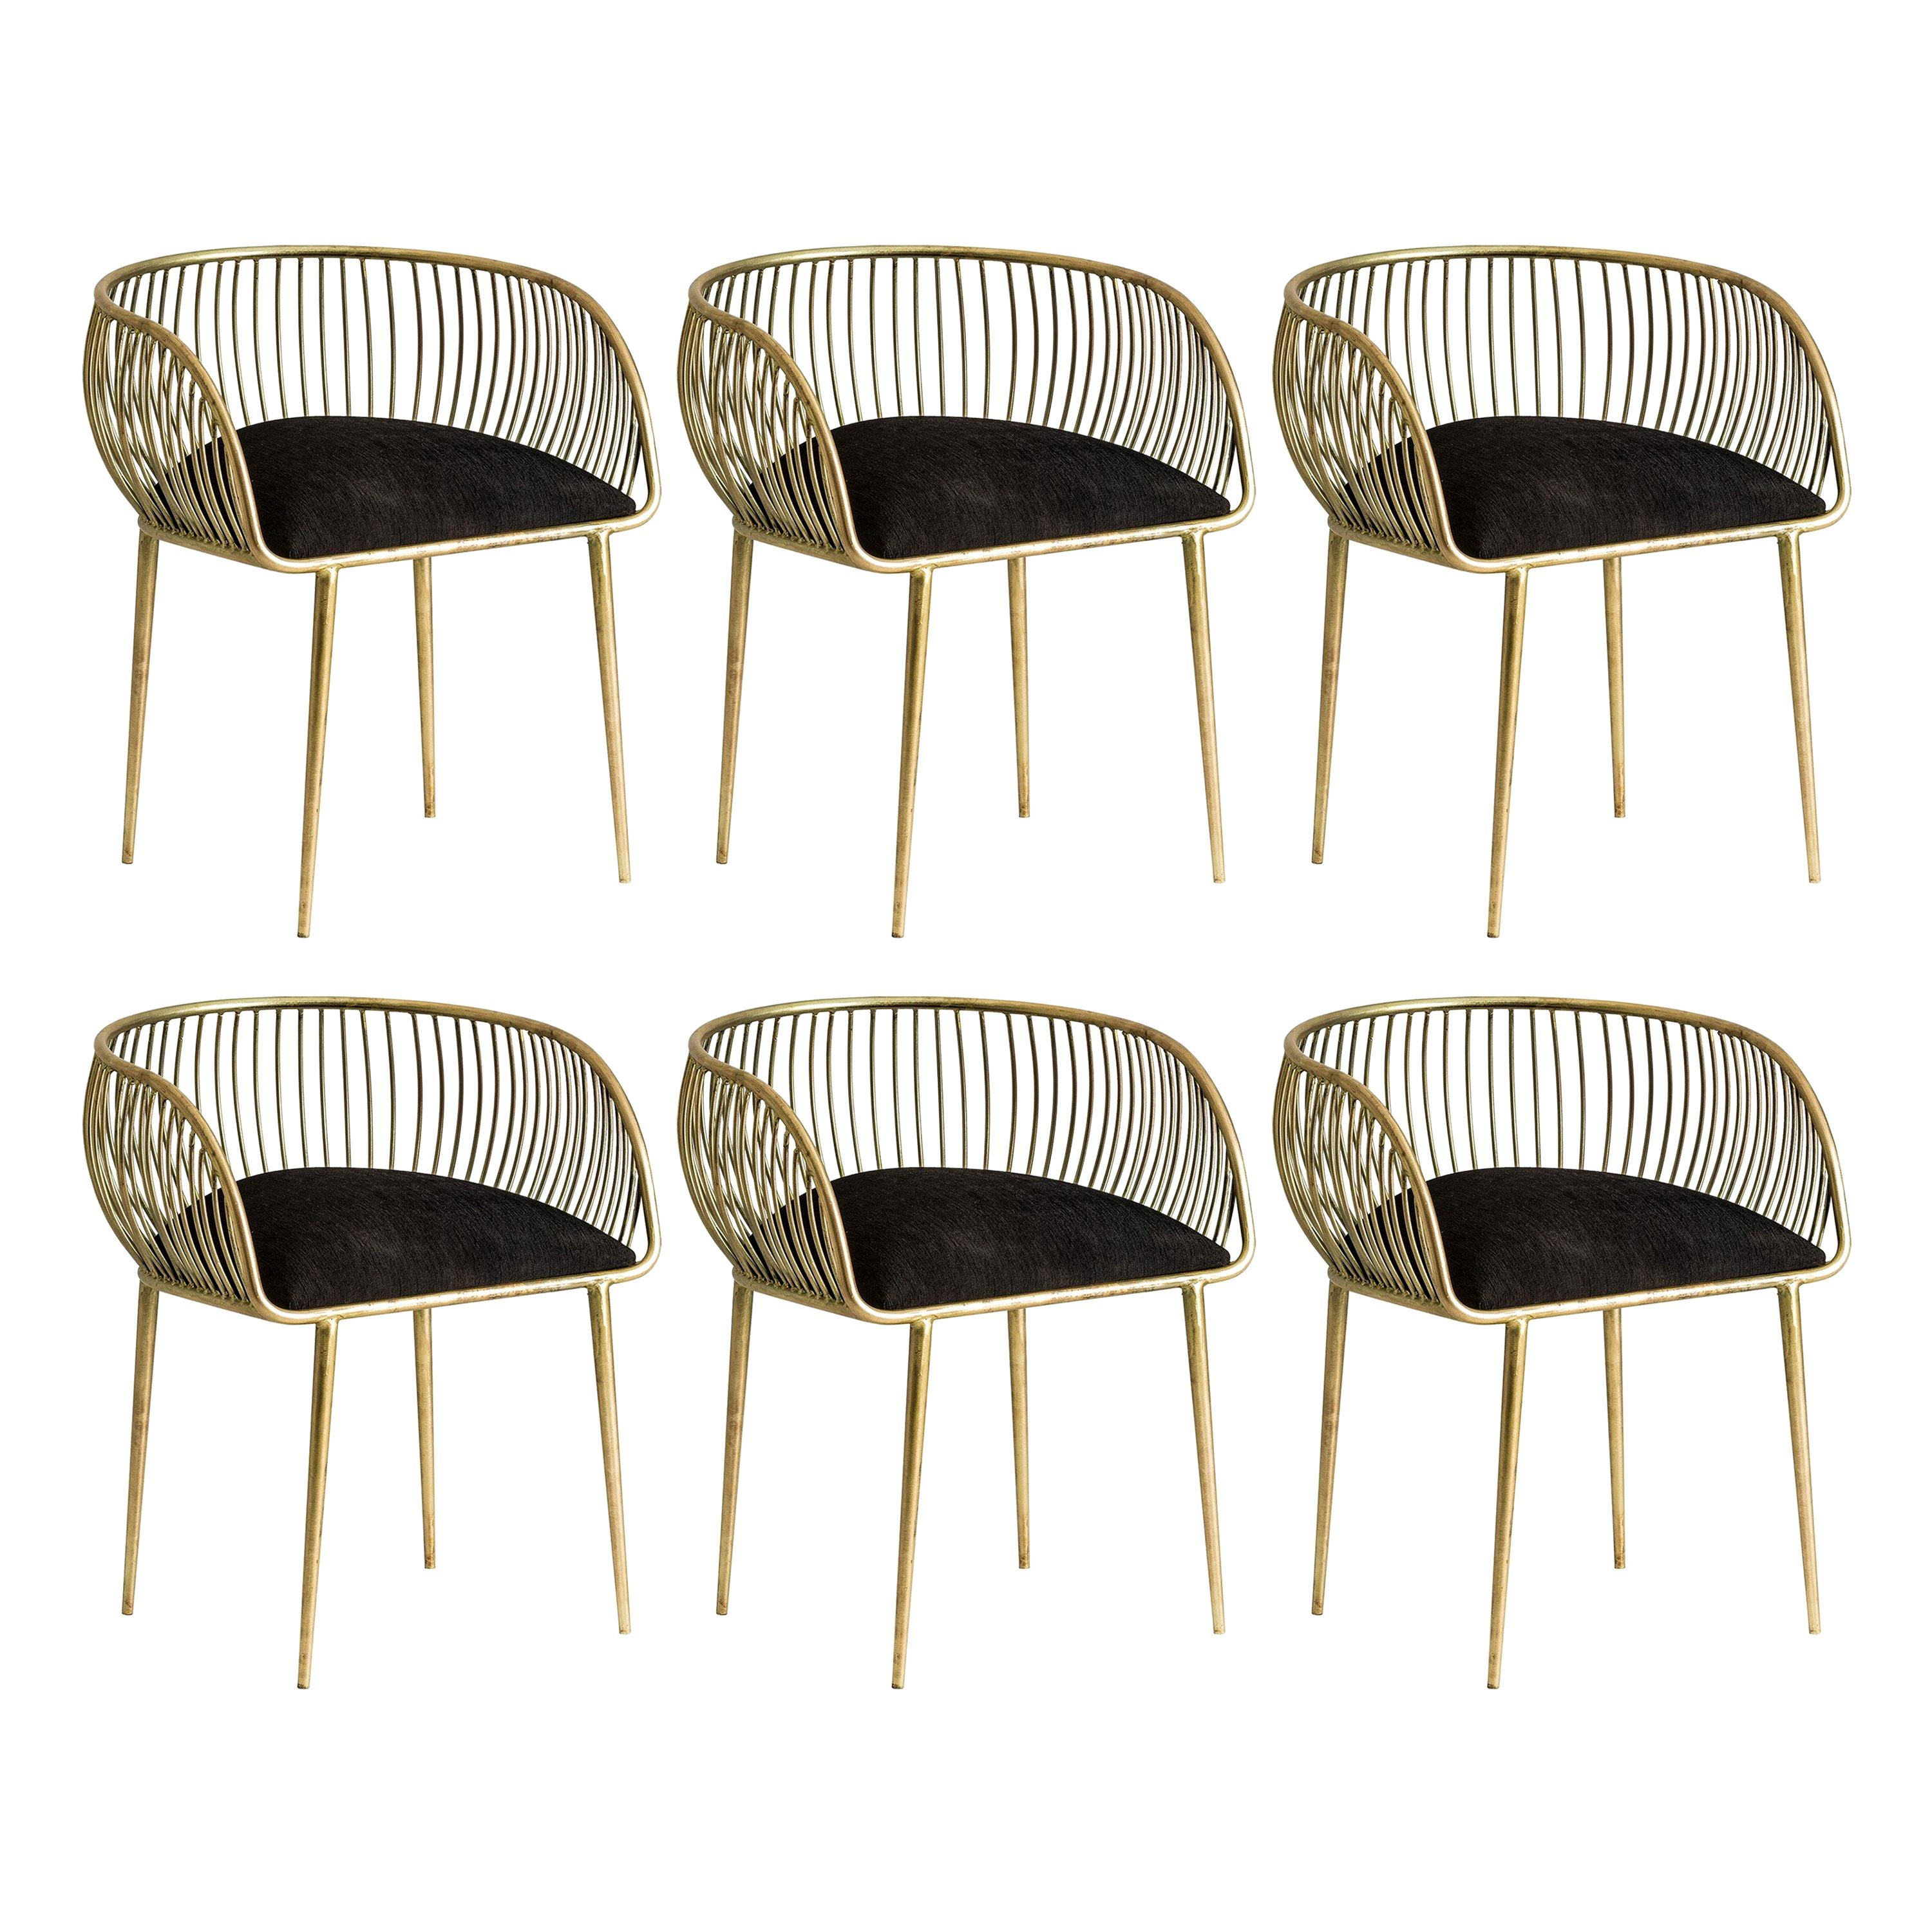 Set of Six Gilded Metal and Black Velvet Italian Style Dining Chairs